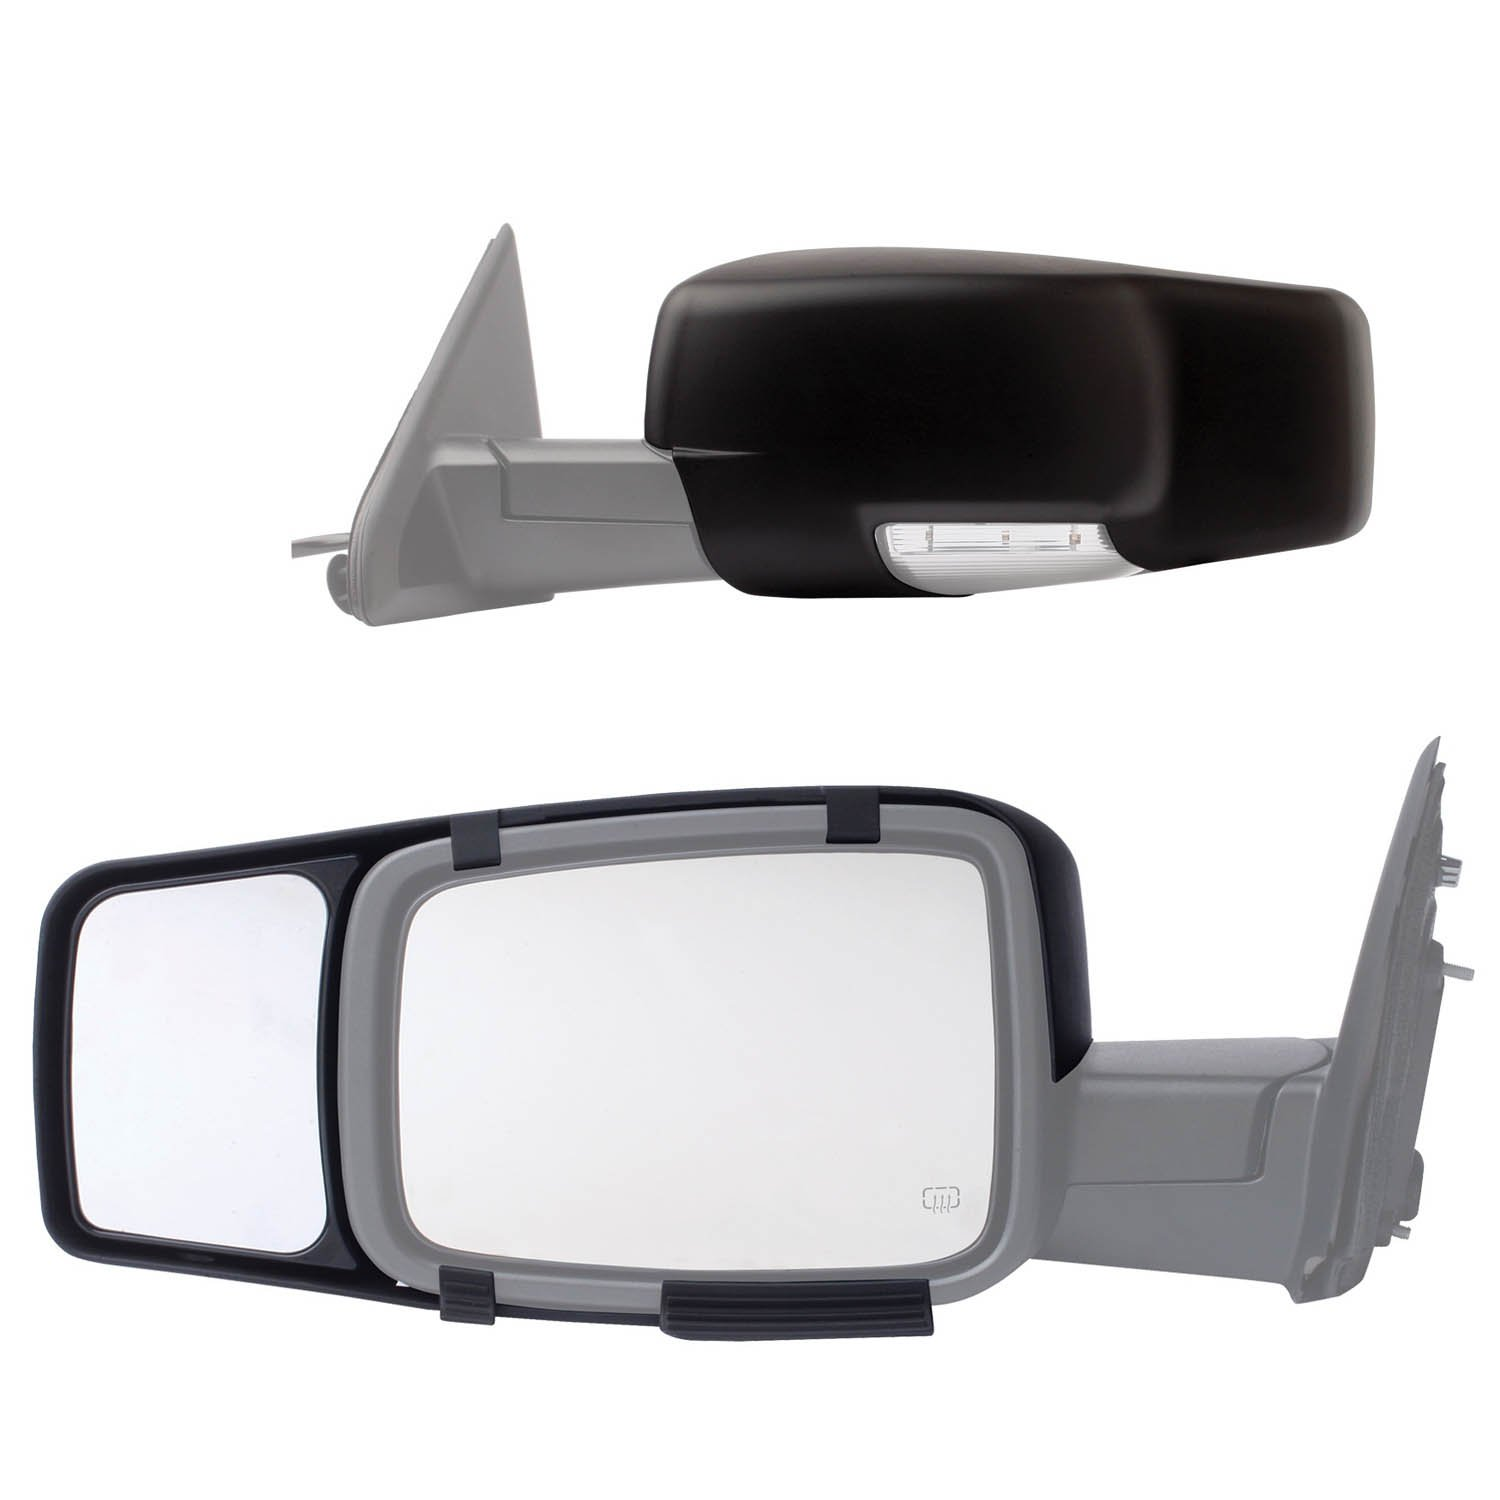 Fit system 80710 snap on black towing mirror for dodge ram 1500 2500 3500 pair